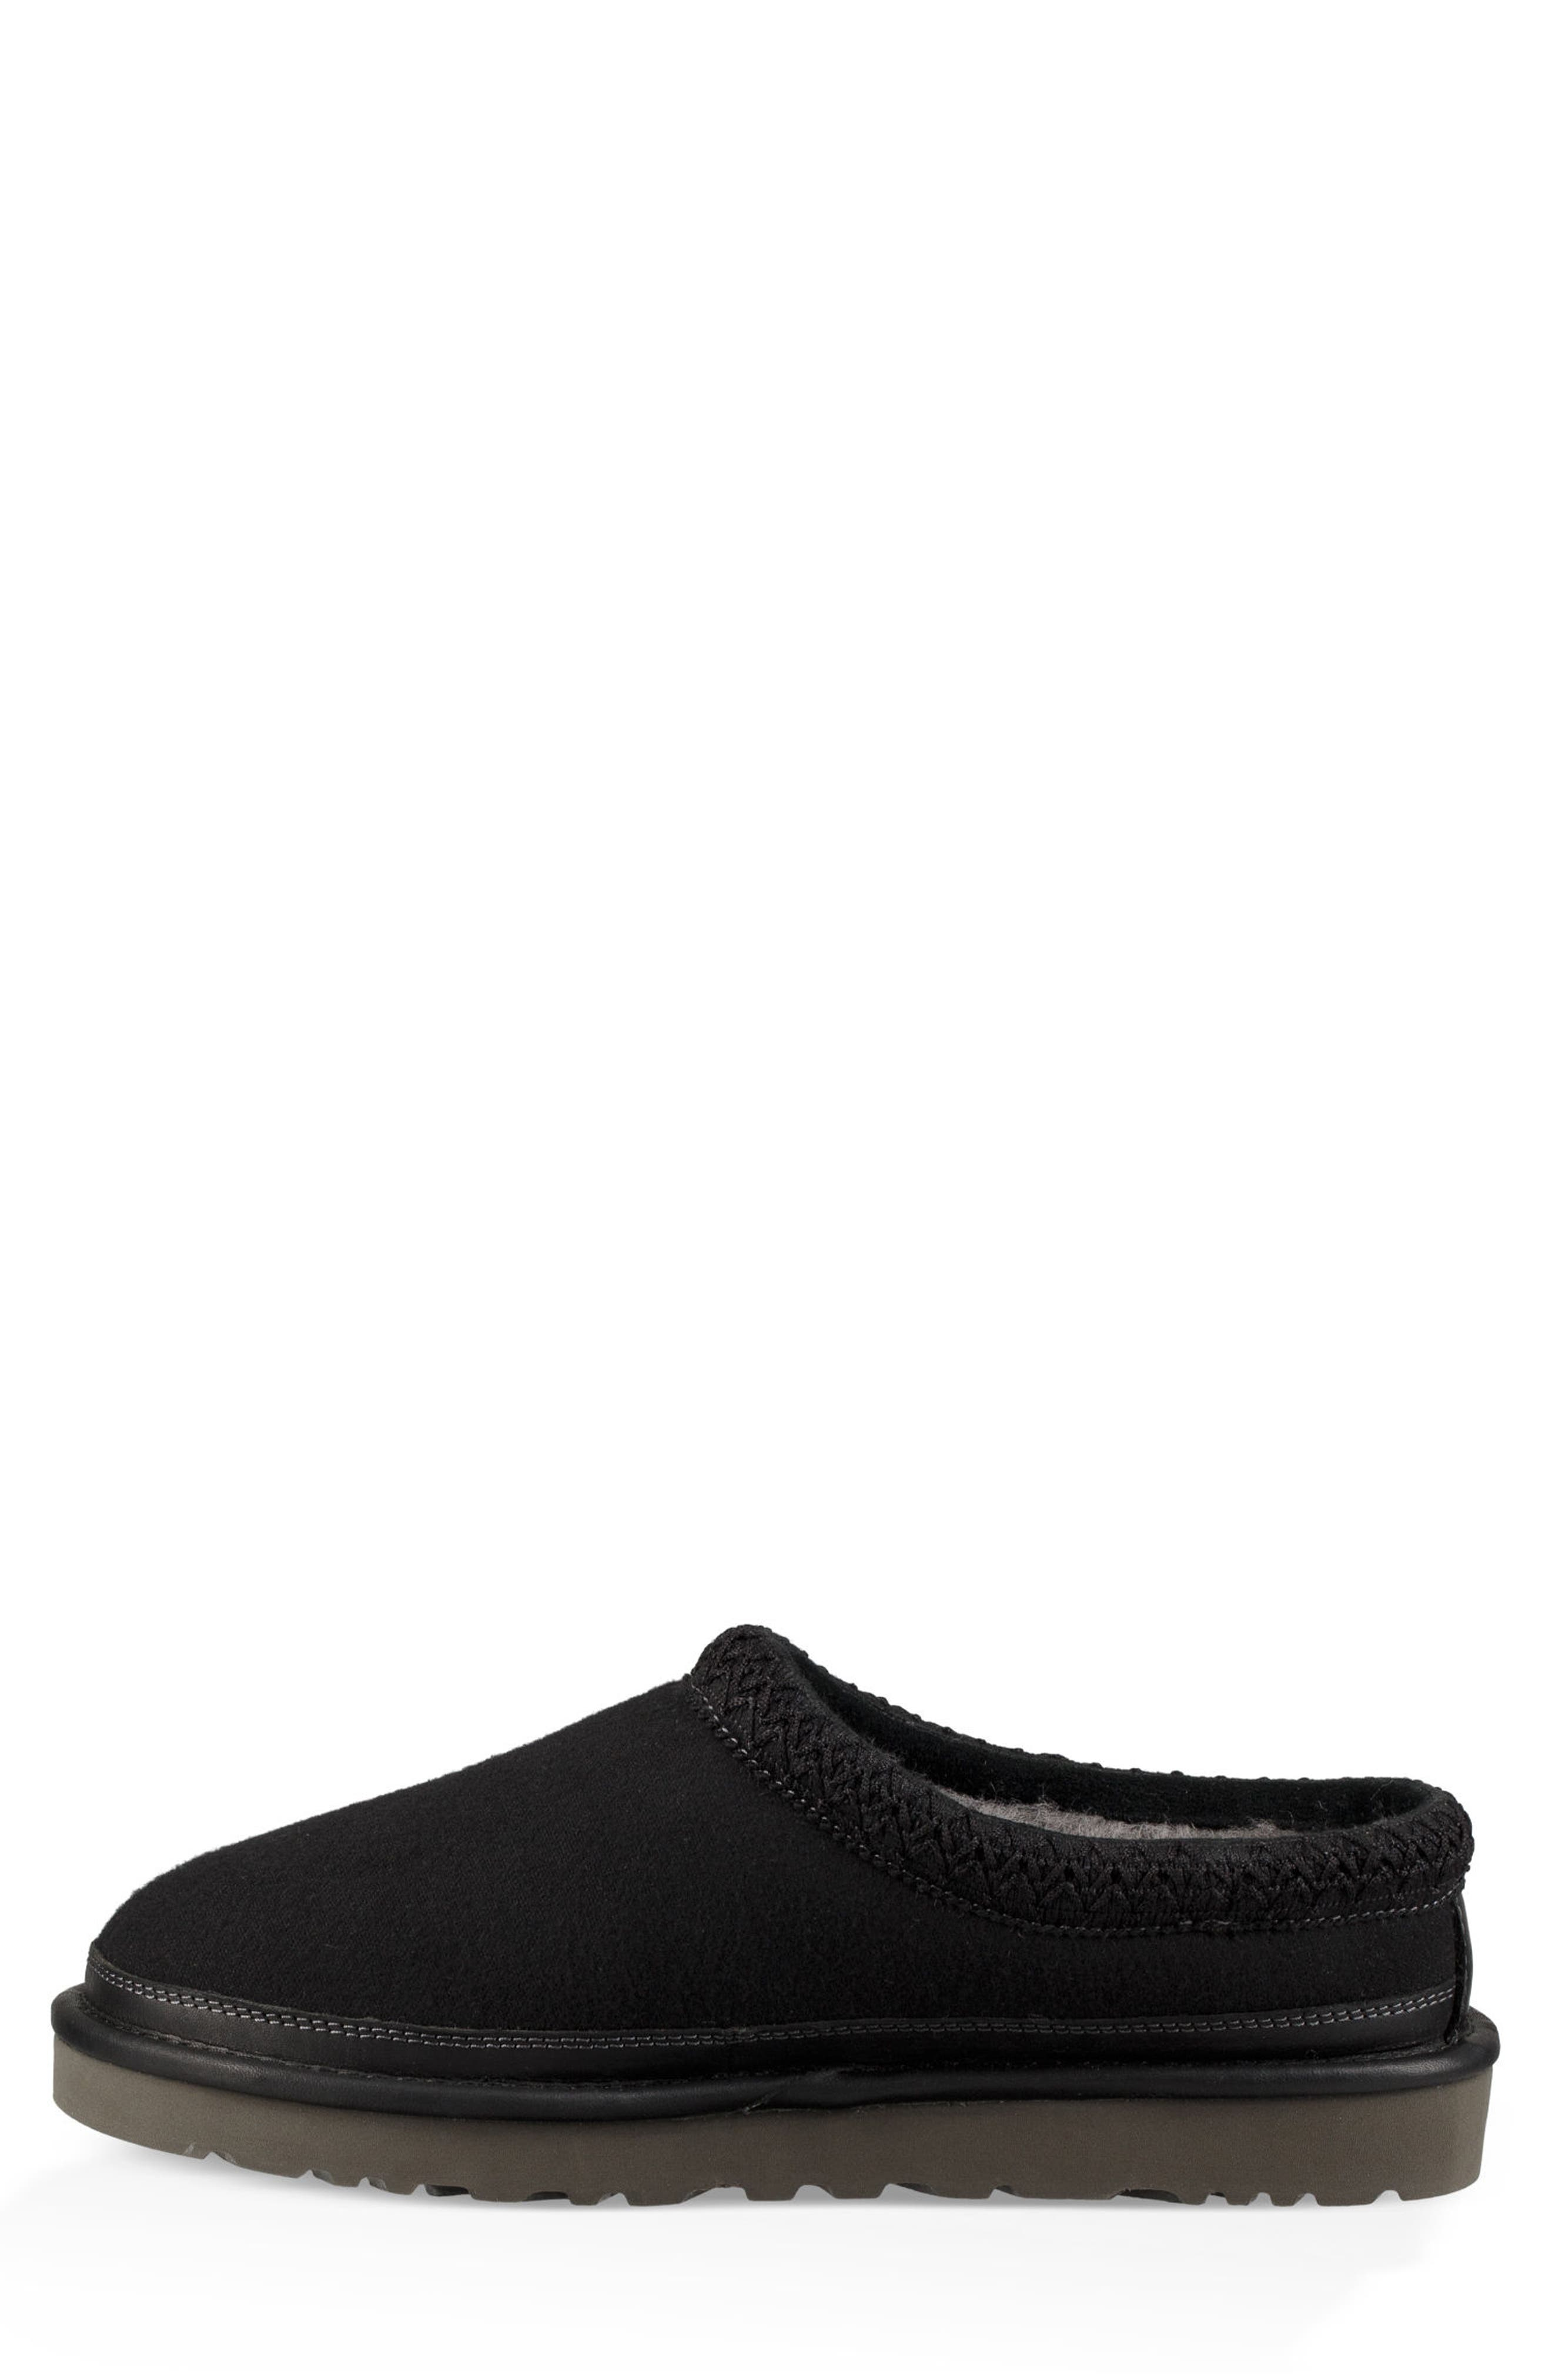 'Tasman' Slipper,                             Alternate thumbnail 3, color,                             BLACK/ BLACK